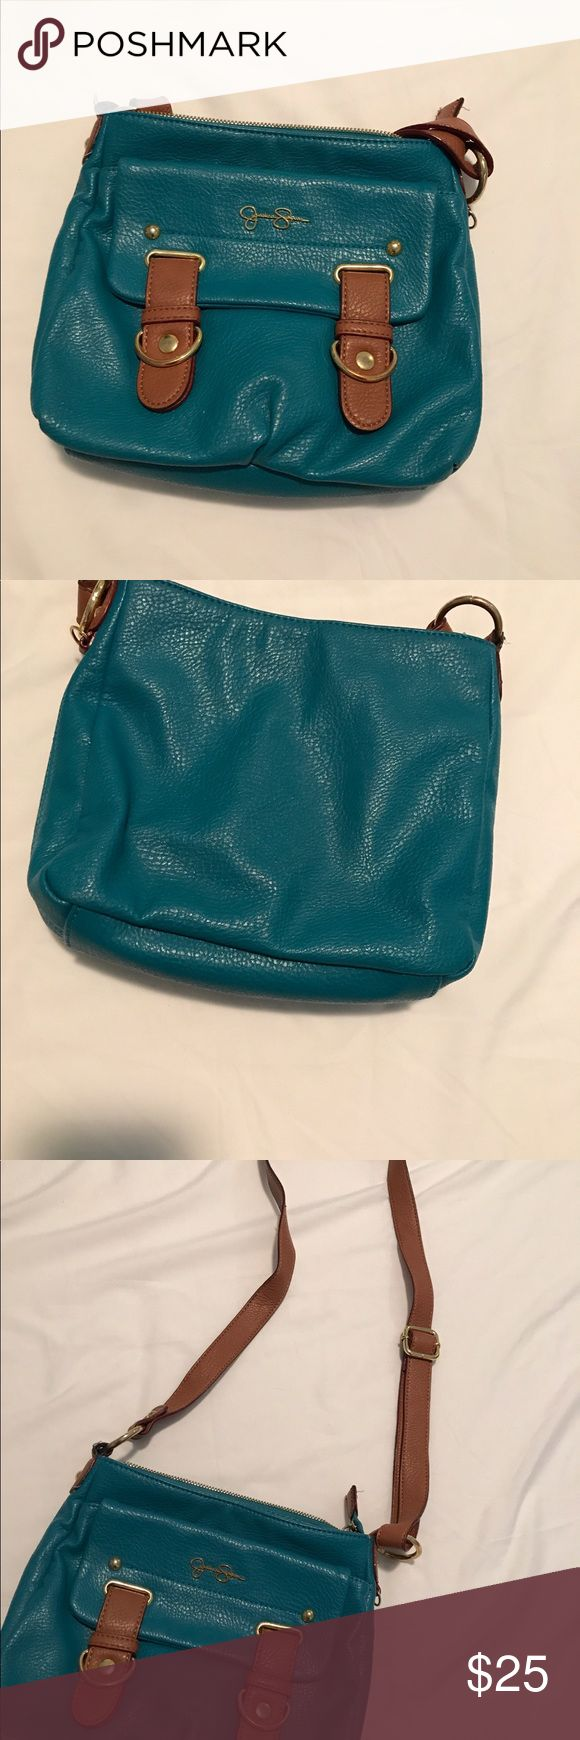 Jessica simpson cross body You will absolutely fall head over heels for this cross body. This blue matches everything so it's easy to use everyday. And also has a lot of room!! Jessica Simpson Bags Crossbody Bags